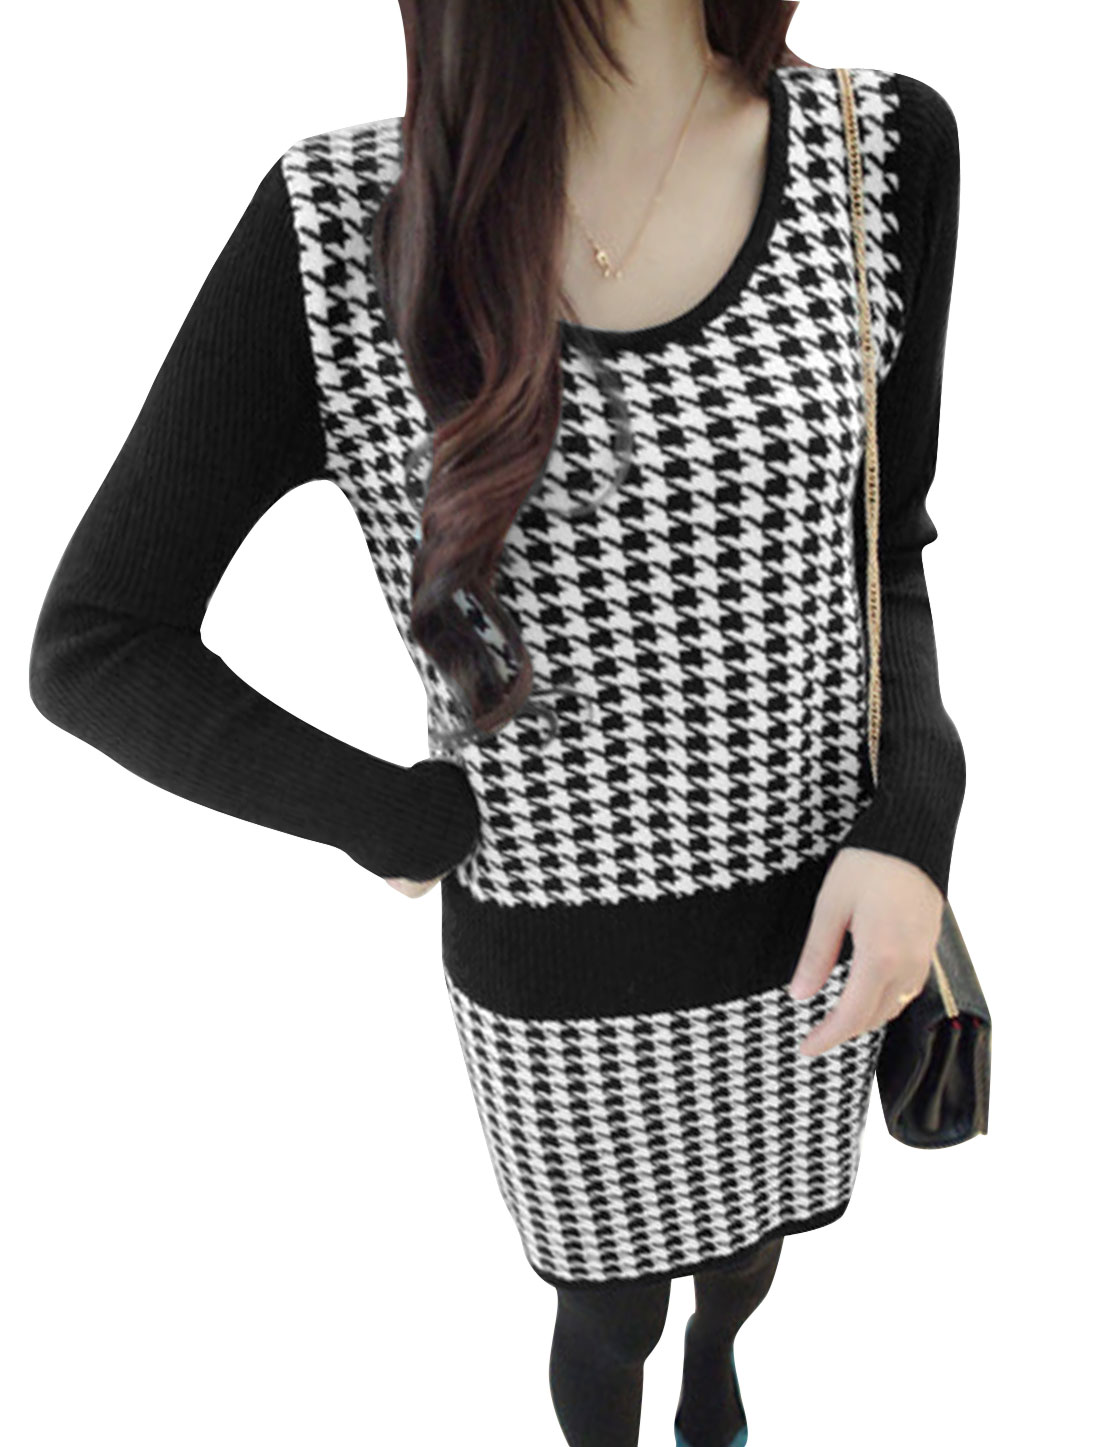 Women Knit Long Sleeves Houndstooth Pattern Panel Dress Black White XS